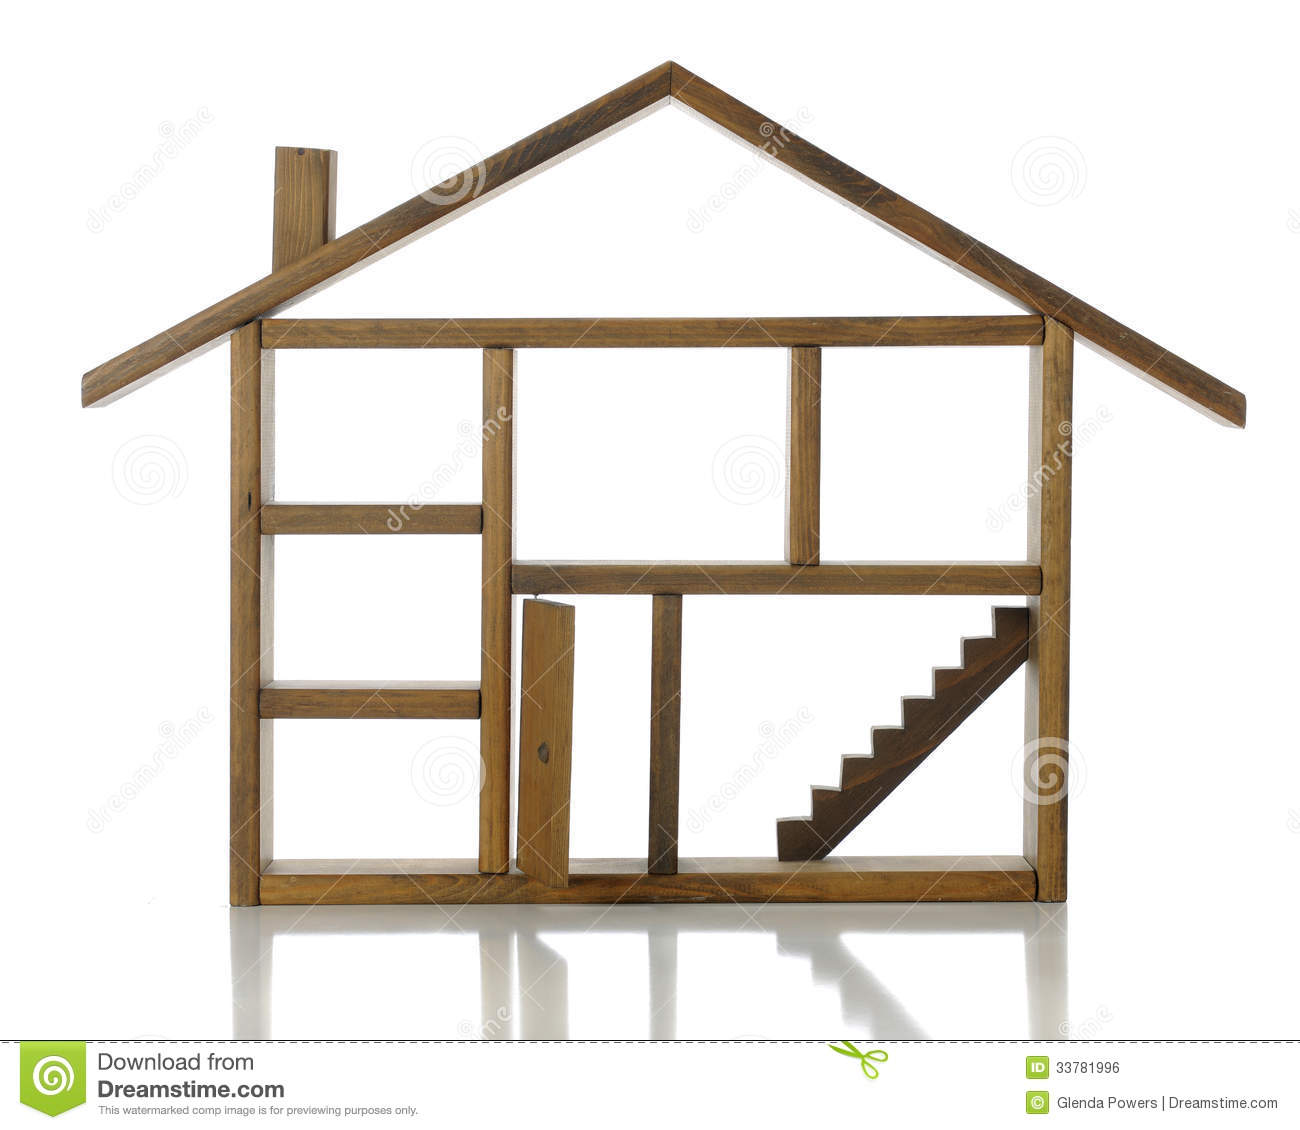 2413329093 likewise Building Start To Finish furthermore Royalty Free Stock Image Opened House Opened Door Empty Wooden Frame Showing Rooms Chimney Stairs White Background Image33781996 also Roof Carpentry likewise The  plete Guide To Tiny House Trailers respond. on a frame home house plans